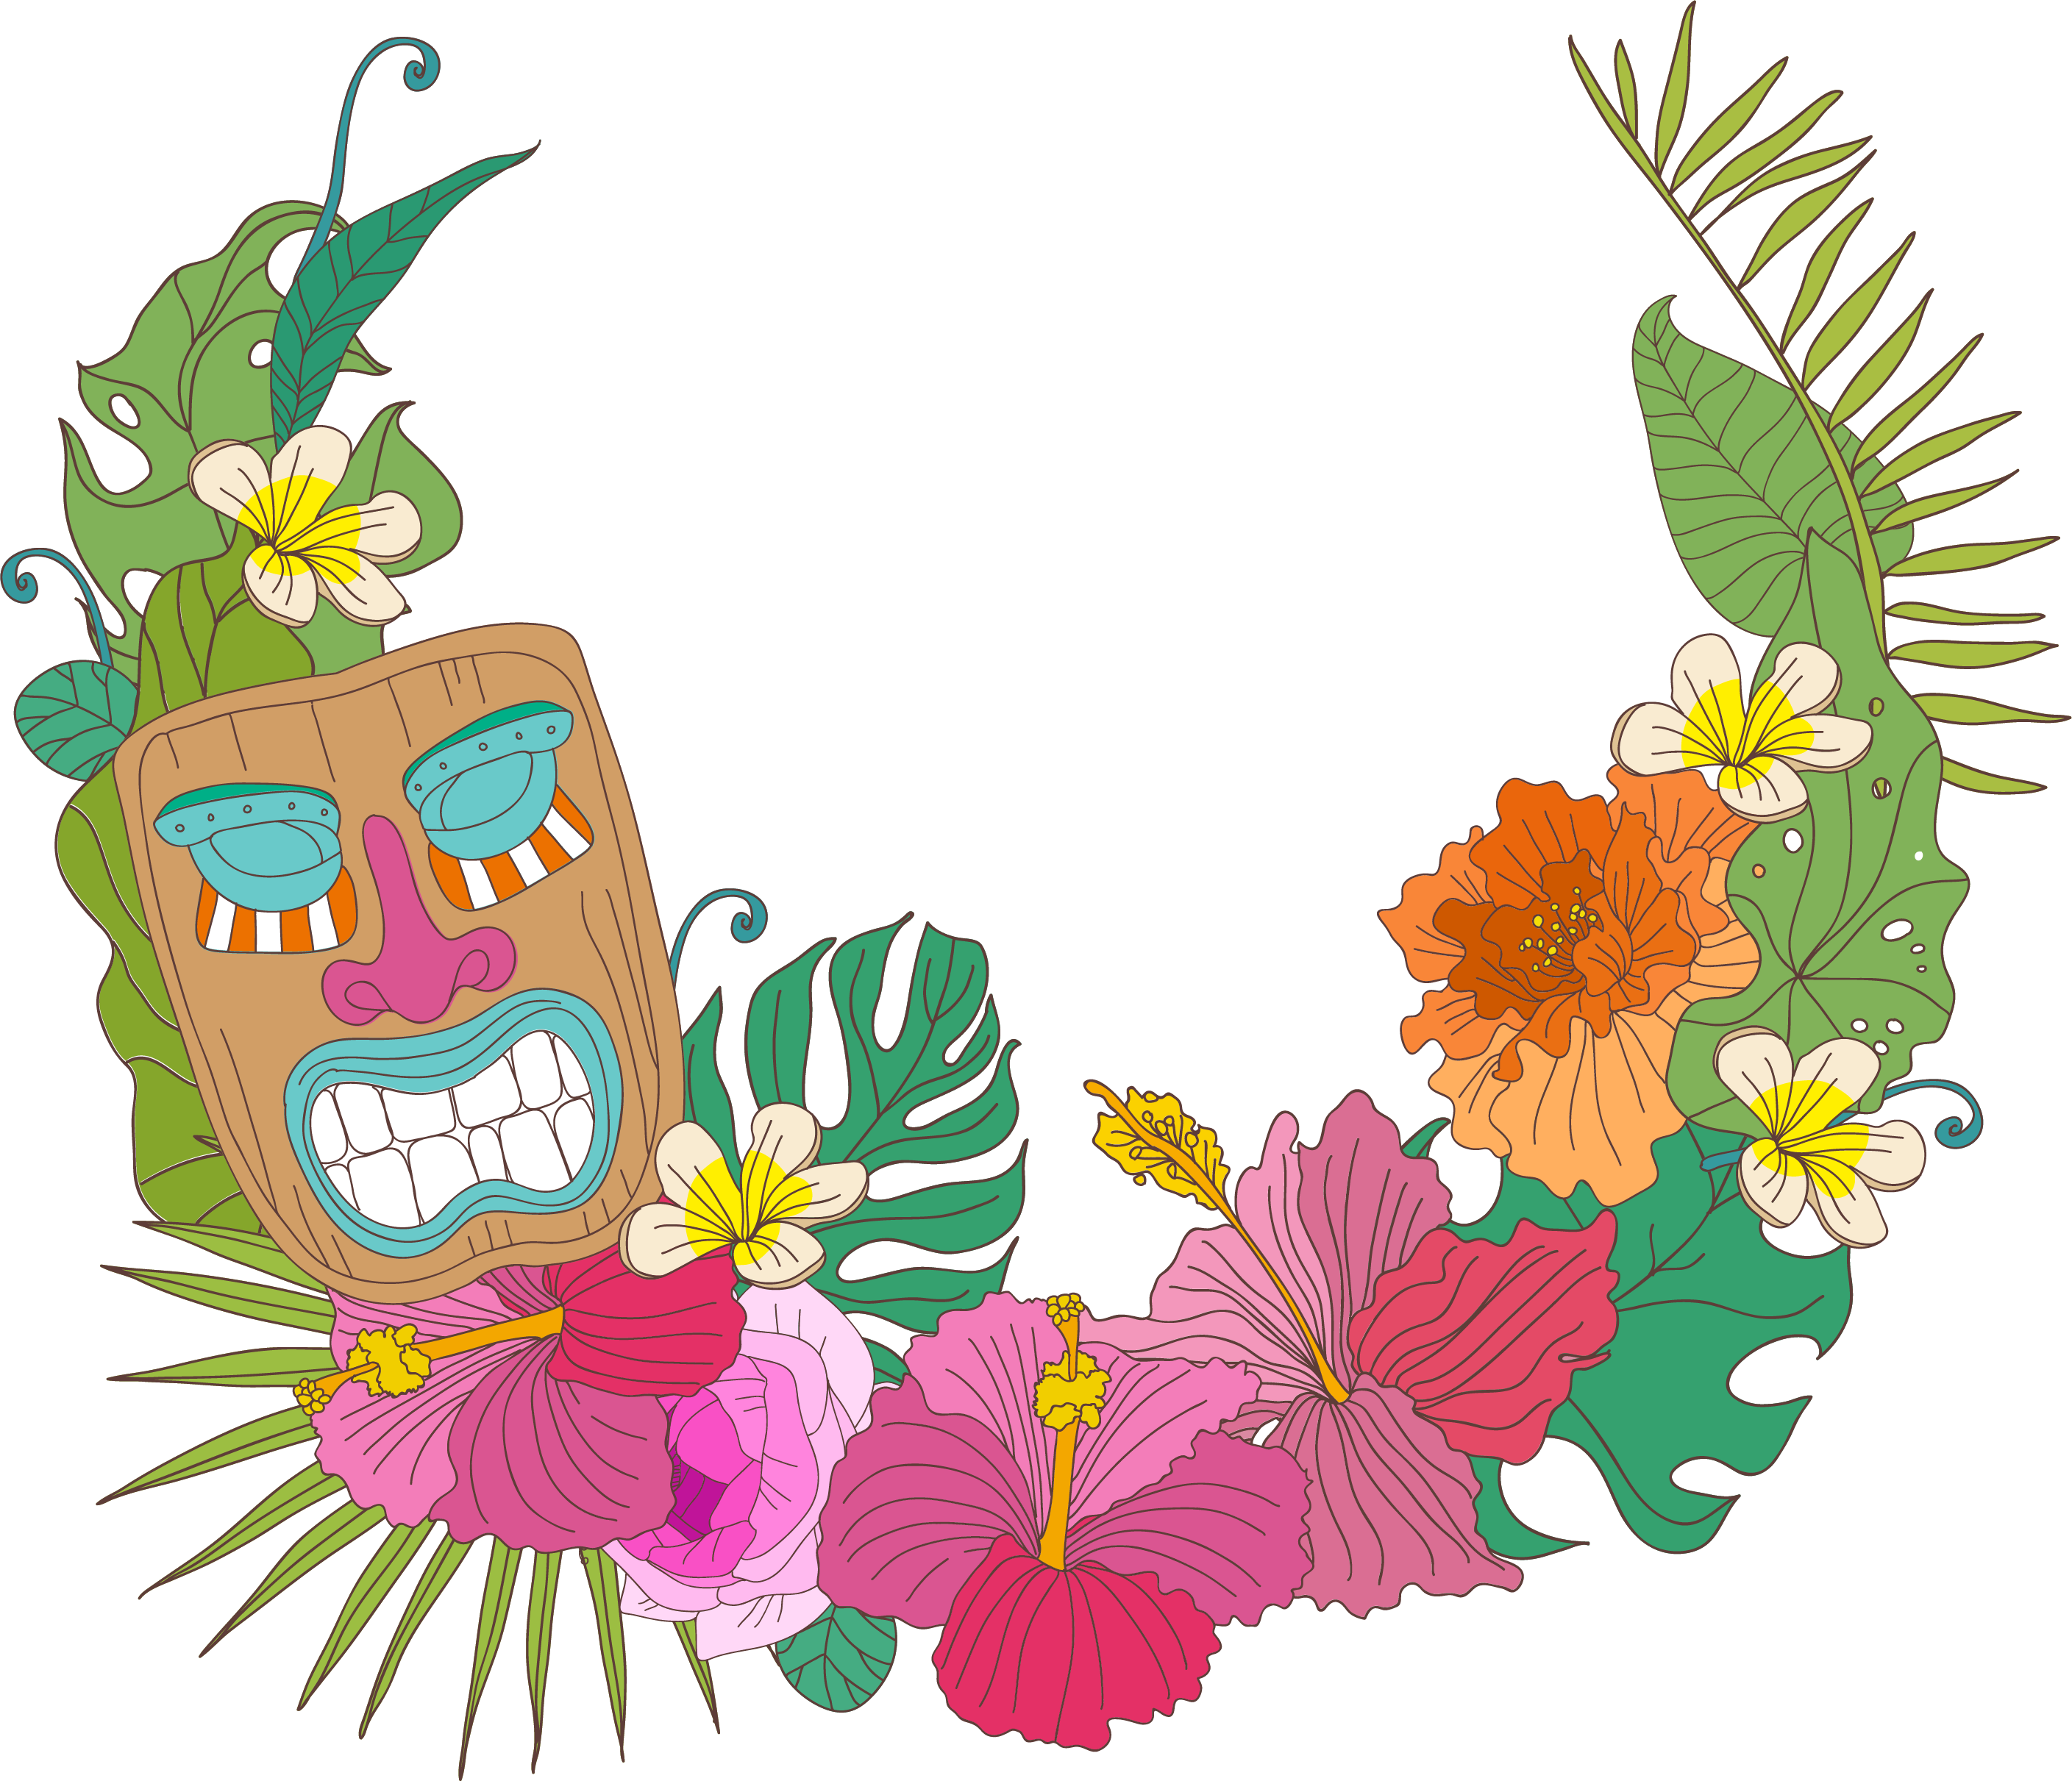 Library of lehua flower image stock png files Clipart Art 2019